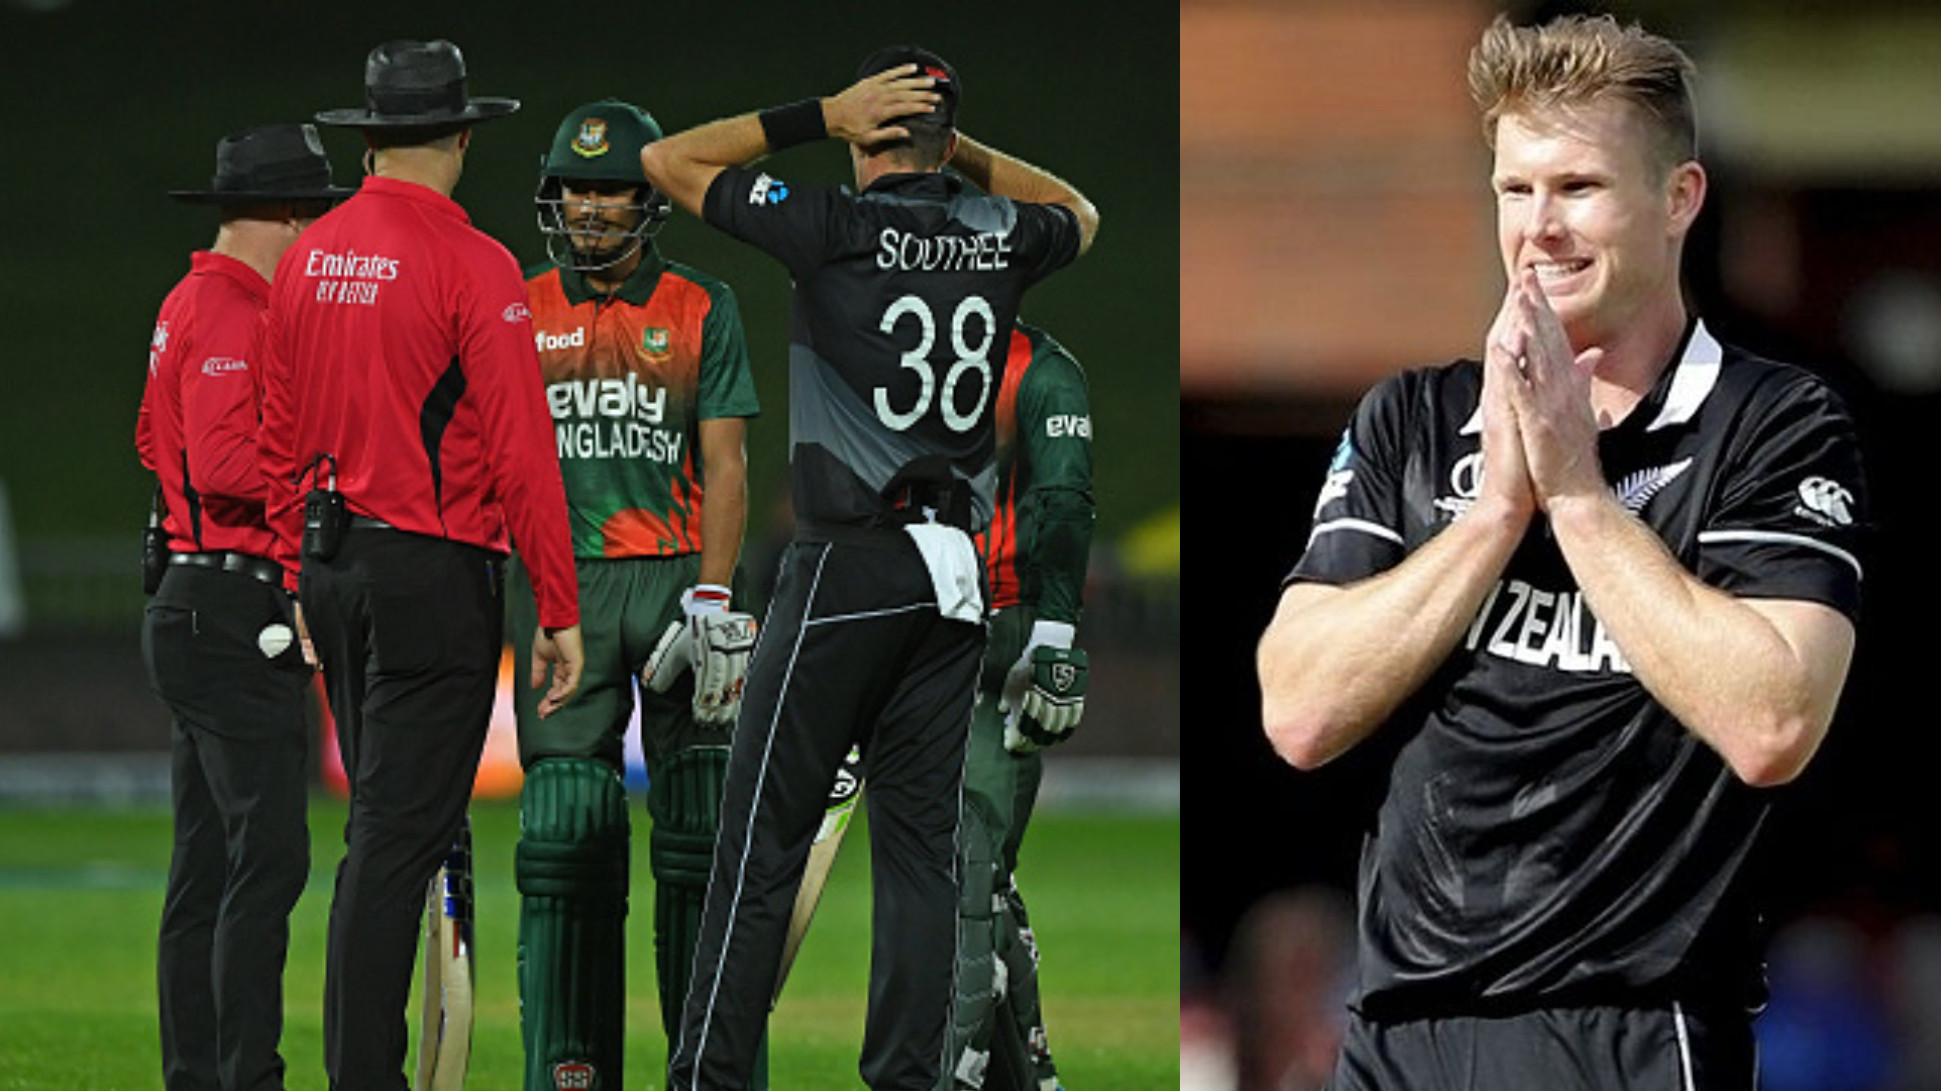 NZ v BAN 2021: How is it possible to start a chase without knowing the target, asks Jimmy Neesham on revised target gaffe